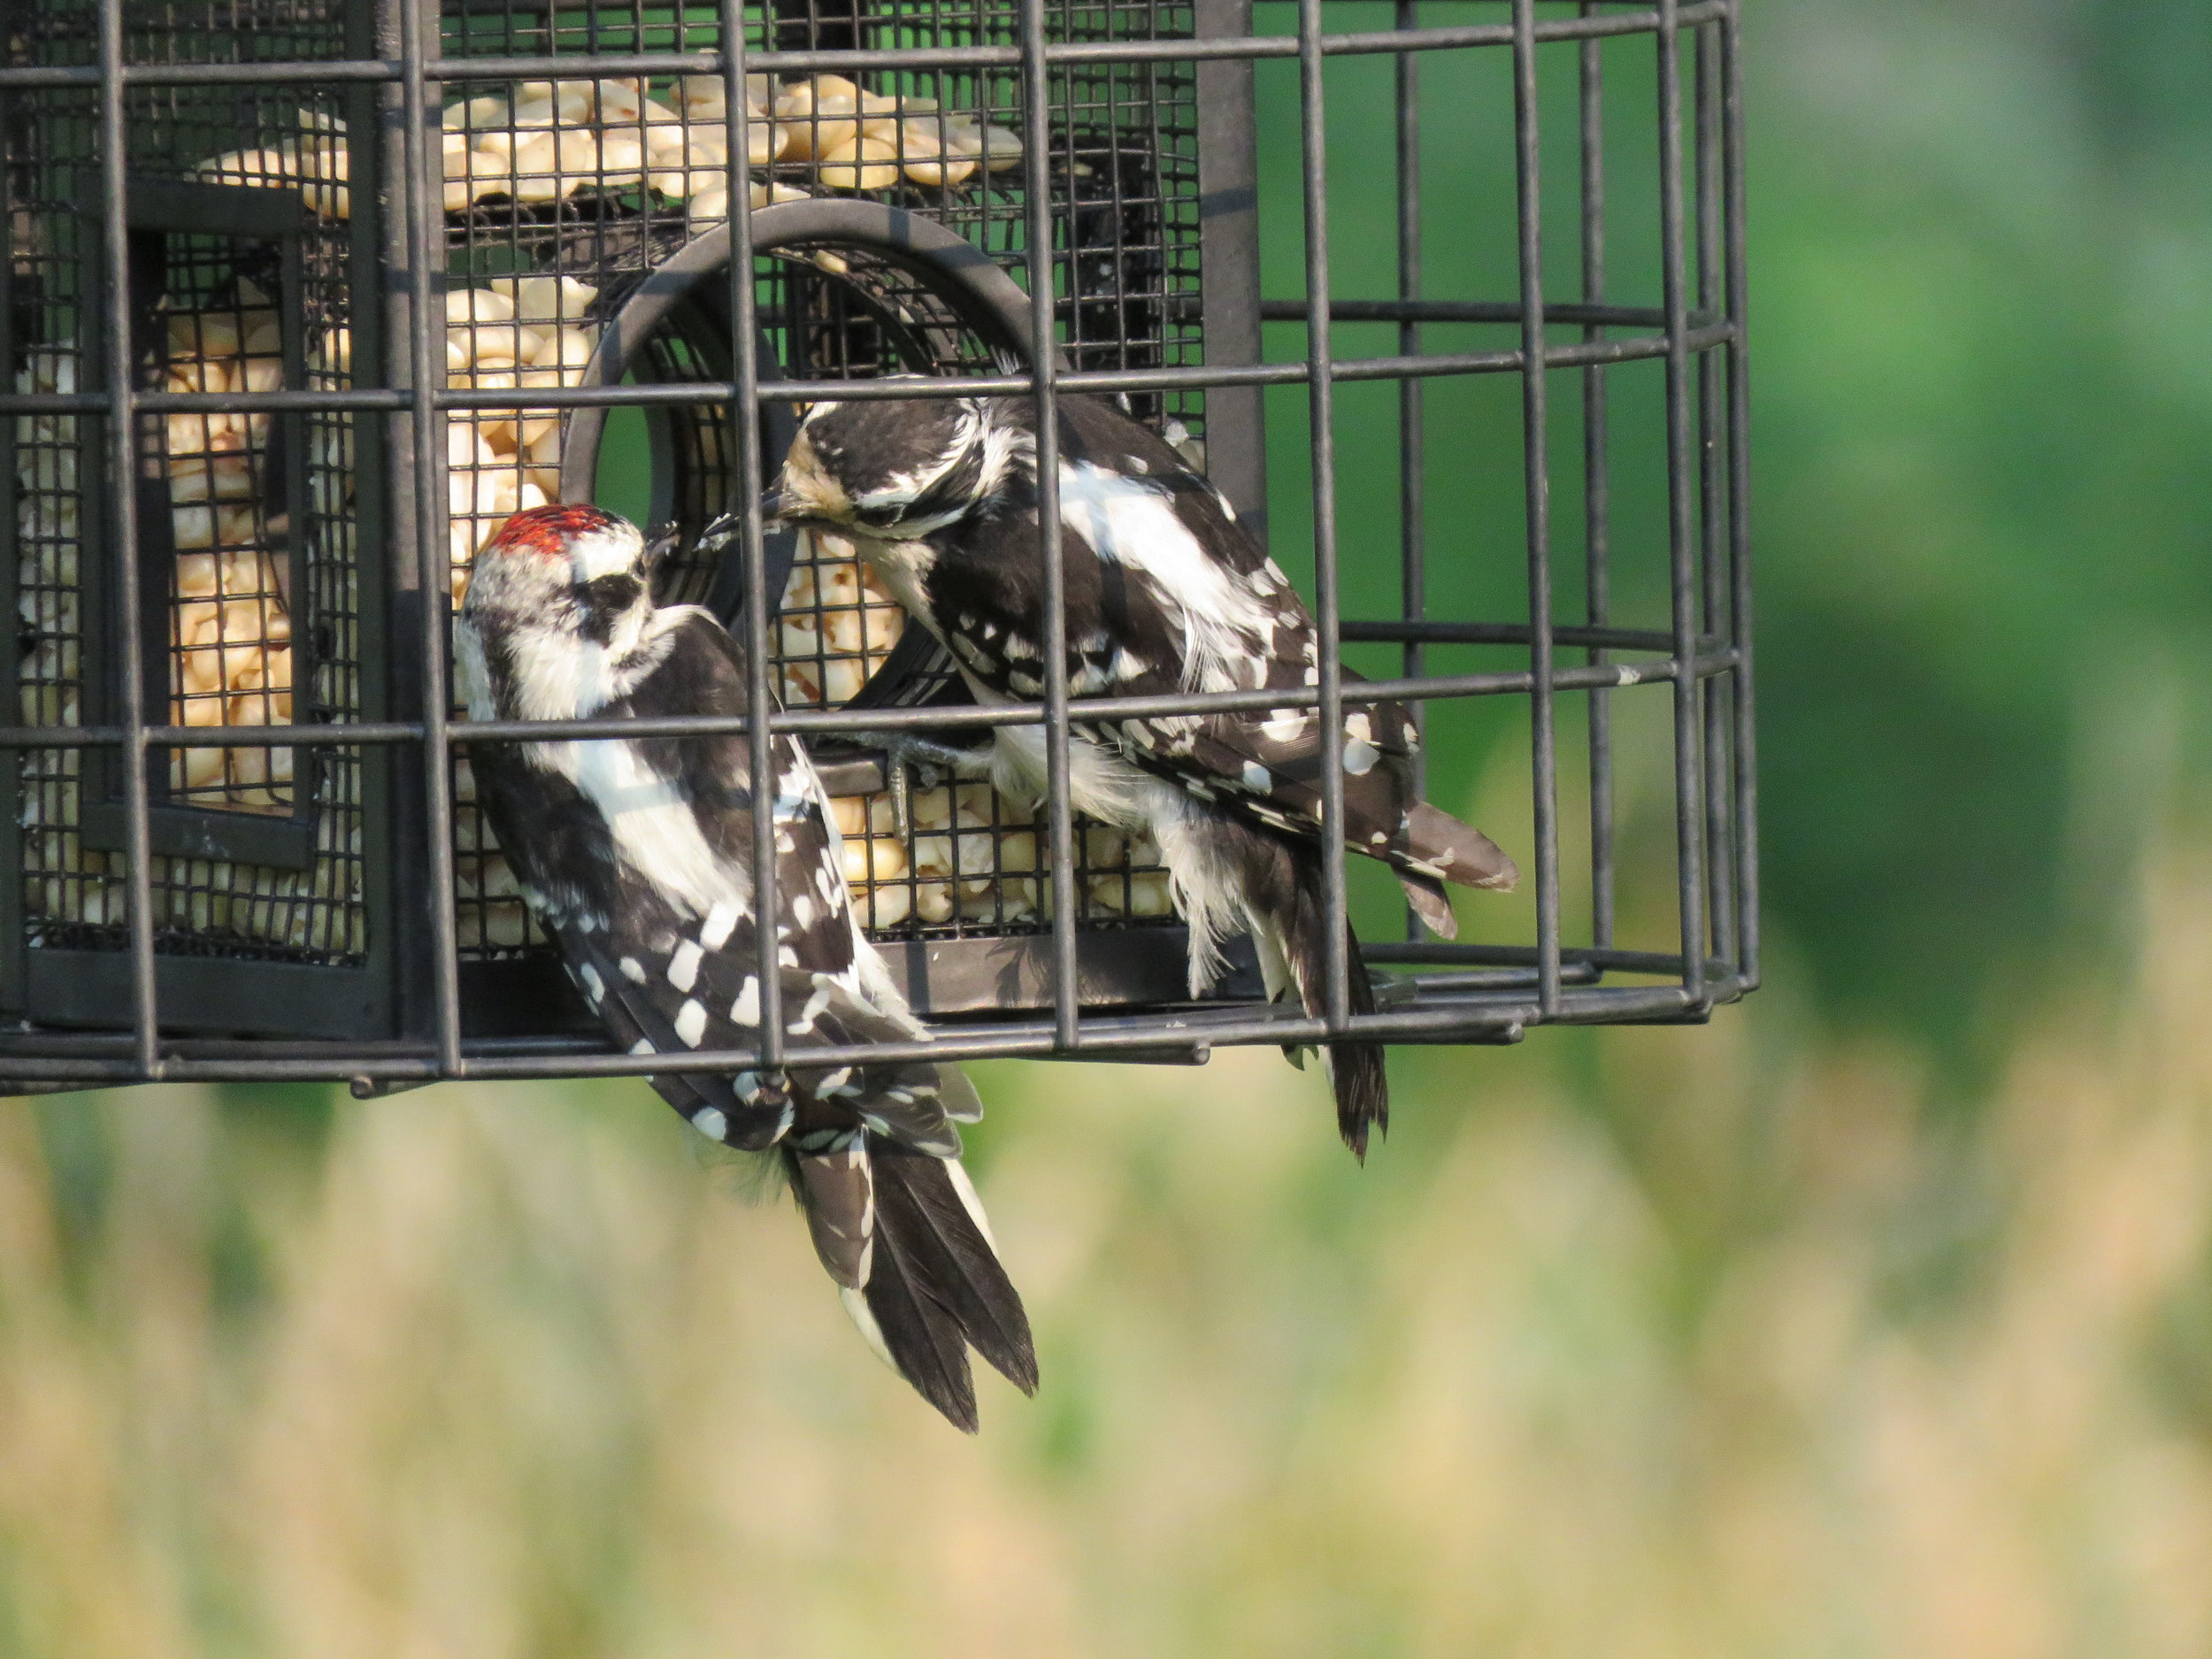 Learning about this feeder thing from mom...Downy Woodpeckers